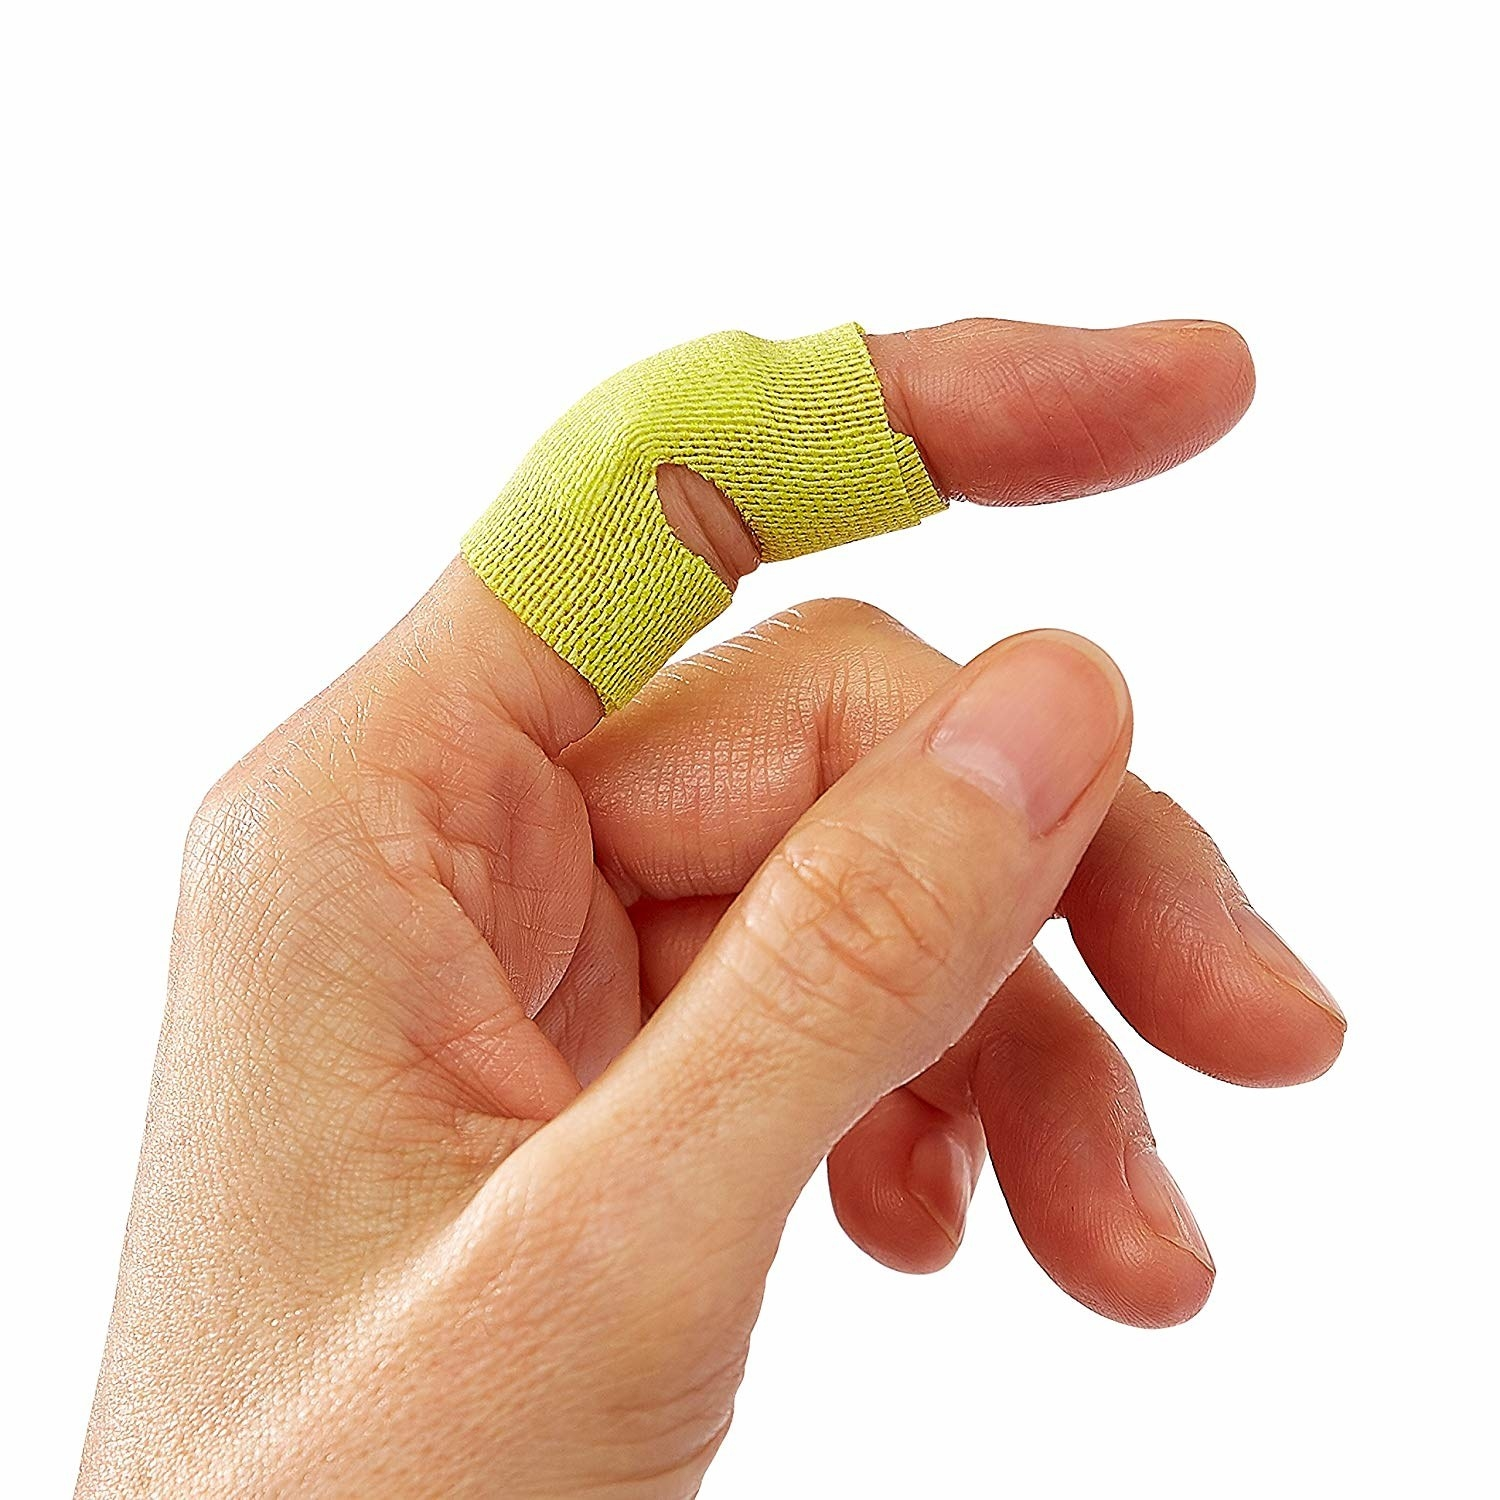 hand with neon green bandage wrapped securely around knuckle on hand